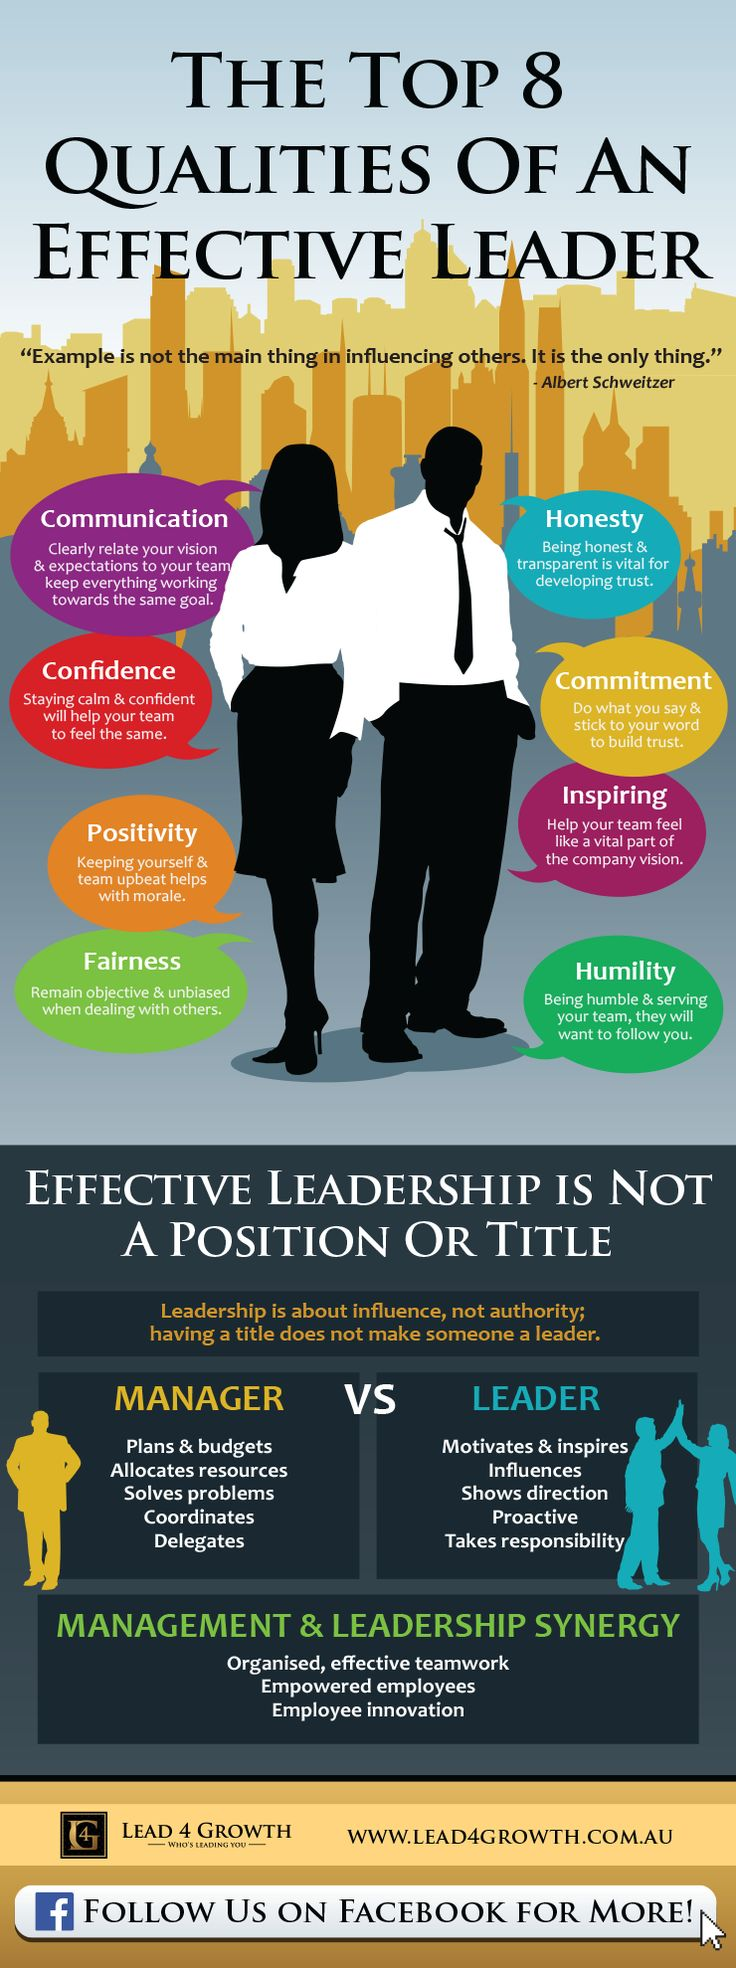 17 best images about leadership teaching training identify and research management leadership and describe leadership qualities such as honesty and integrity fairness responsible behavior ethical work